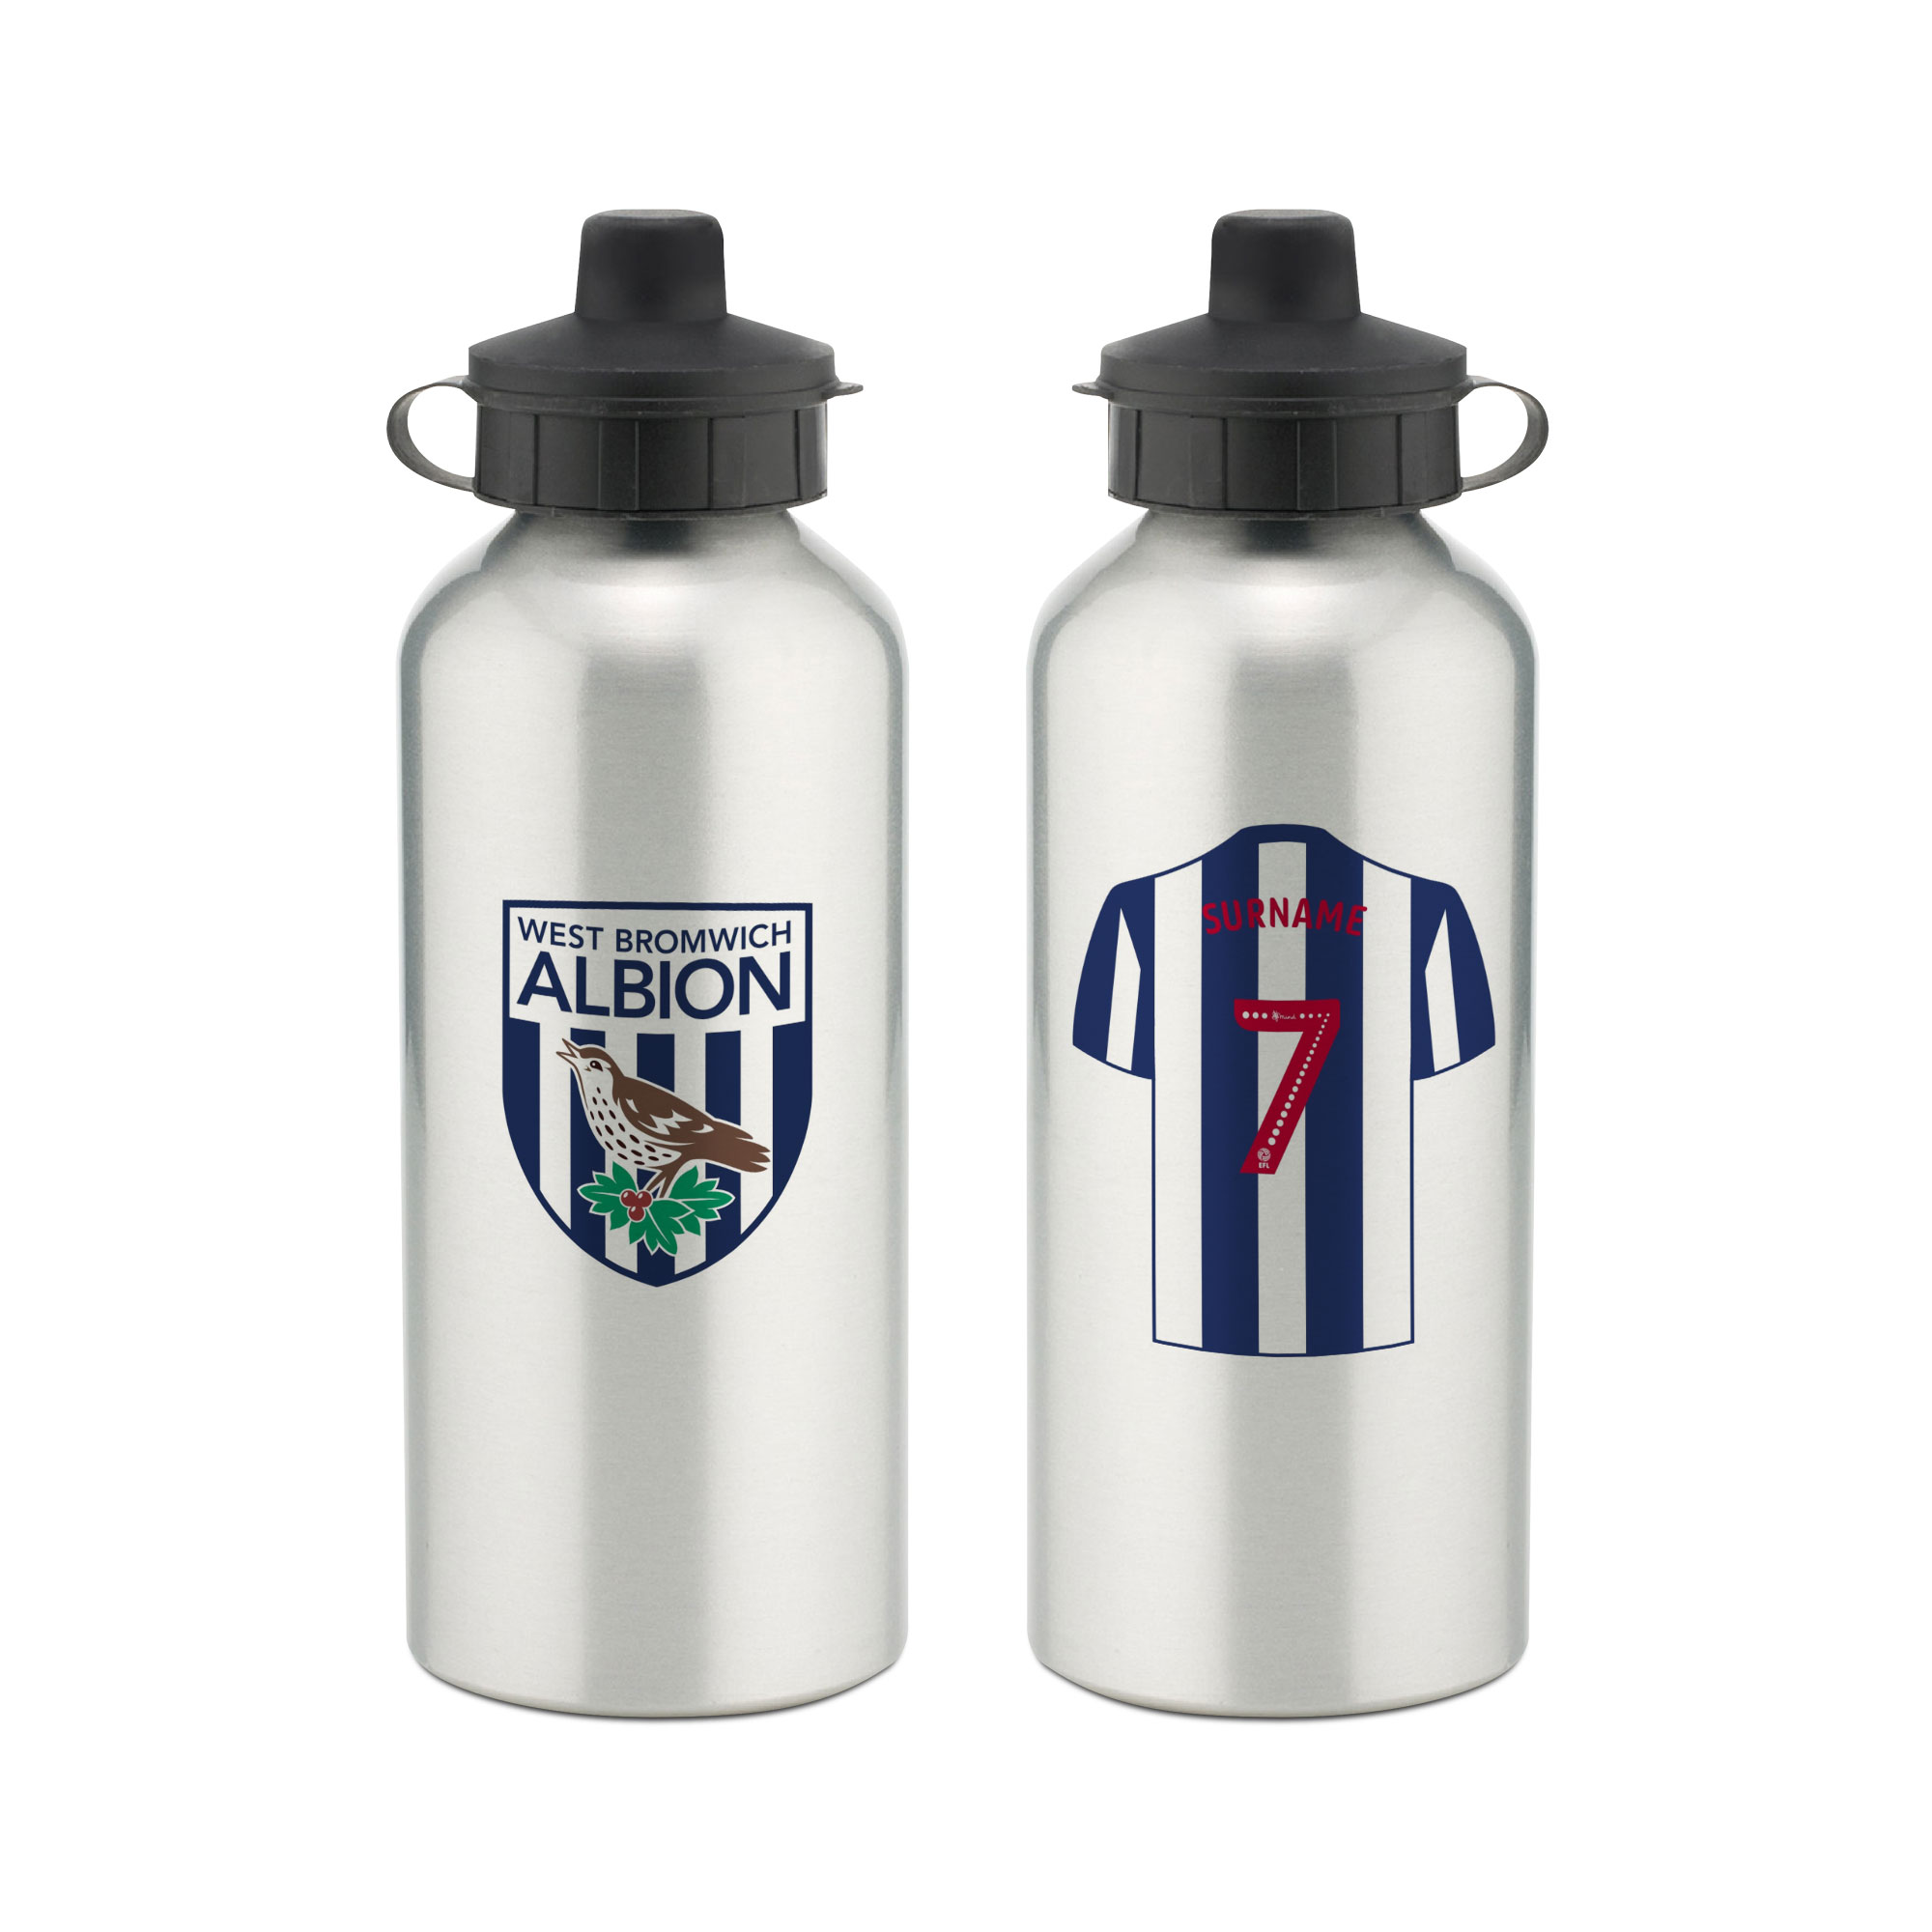 West Bromwich Albion FC Aluminium Water Bottle